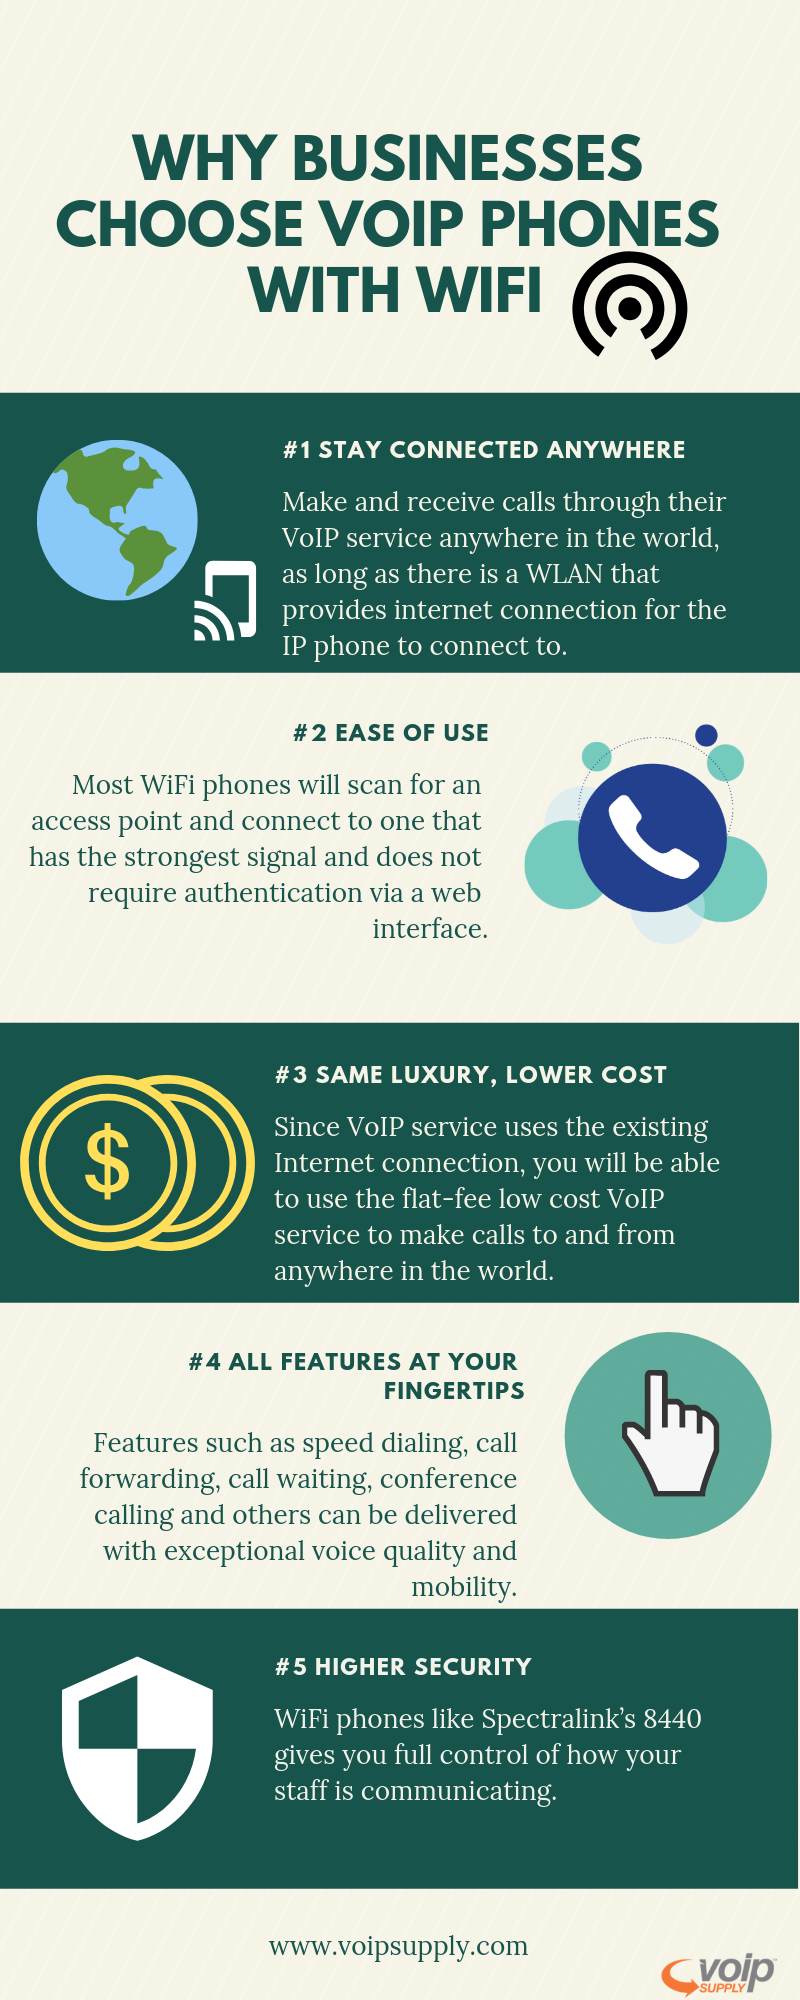 5 Reasons Why Businesses Choose VoIP Phones with WiFi - VoIP Insider